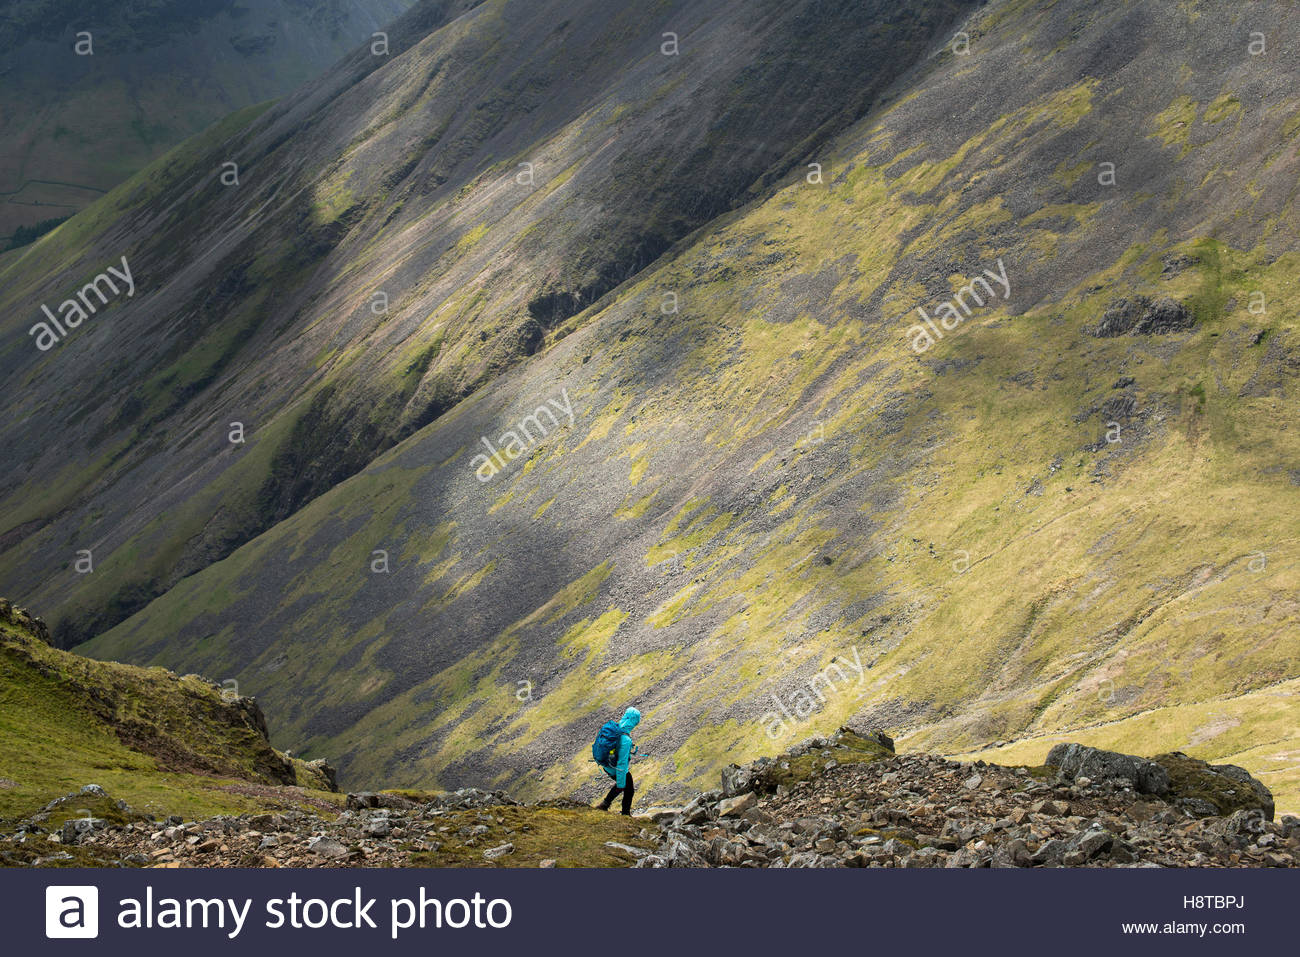 Descending on a scree slope from the top of Great Gable in English Lake District in Wast Water - Stock Image